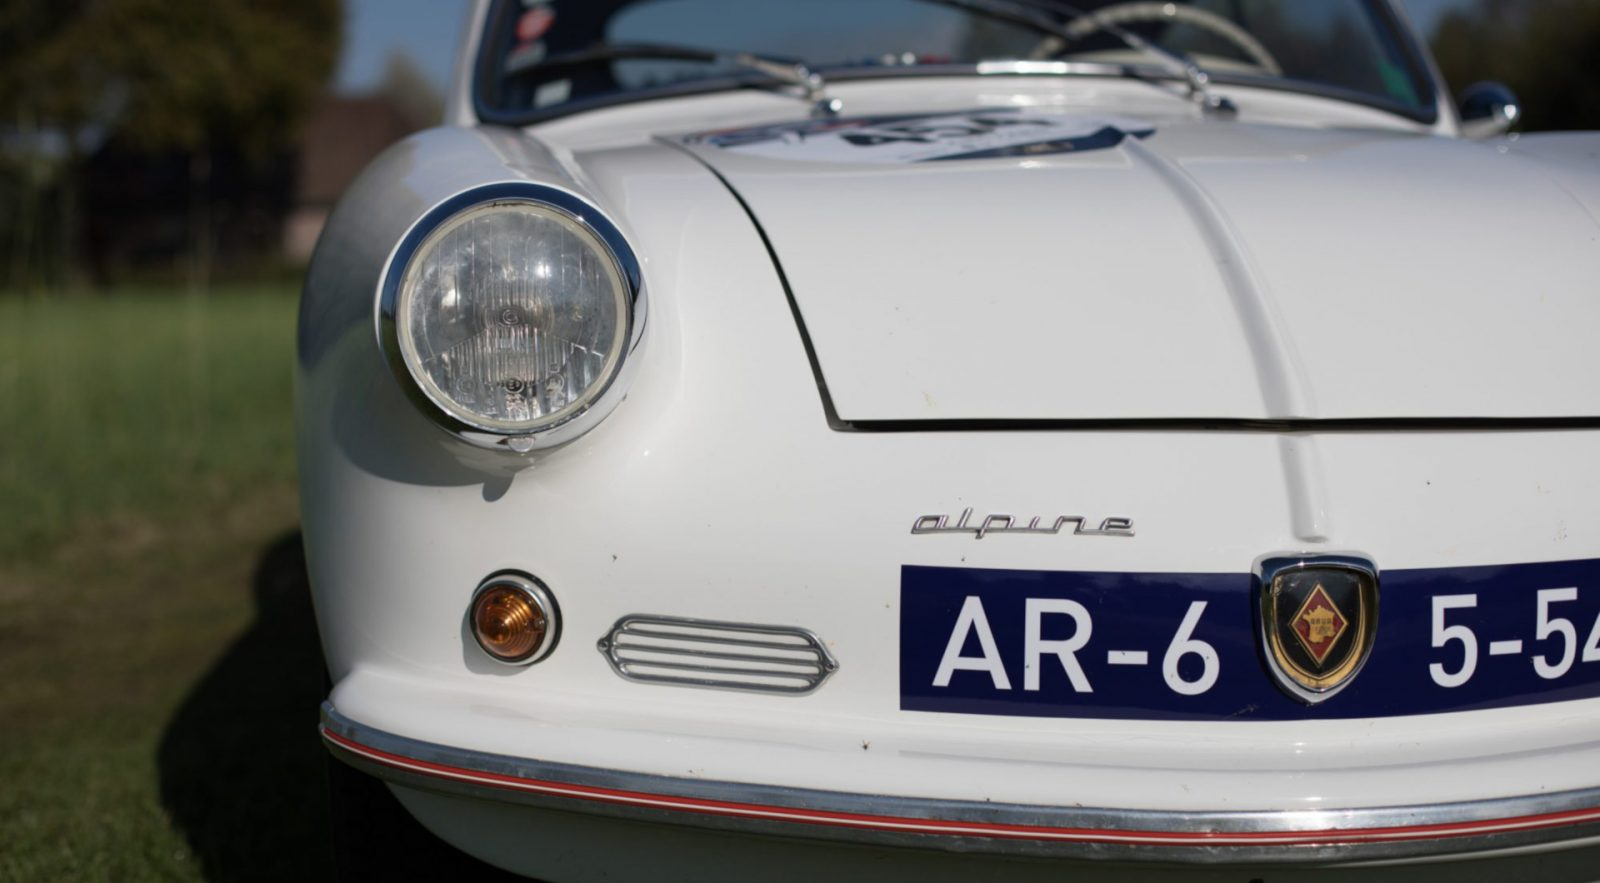 Renault A106 Mille Miles, Mille Miglia eligible car